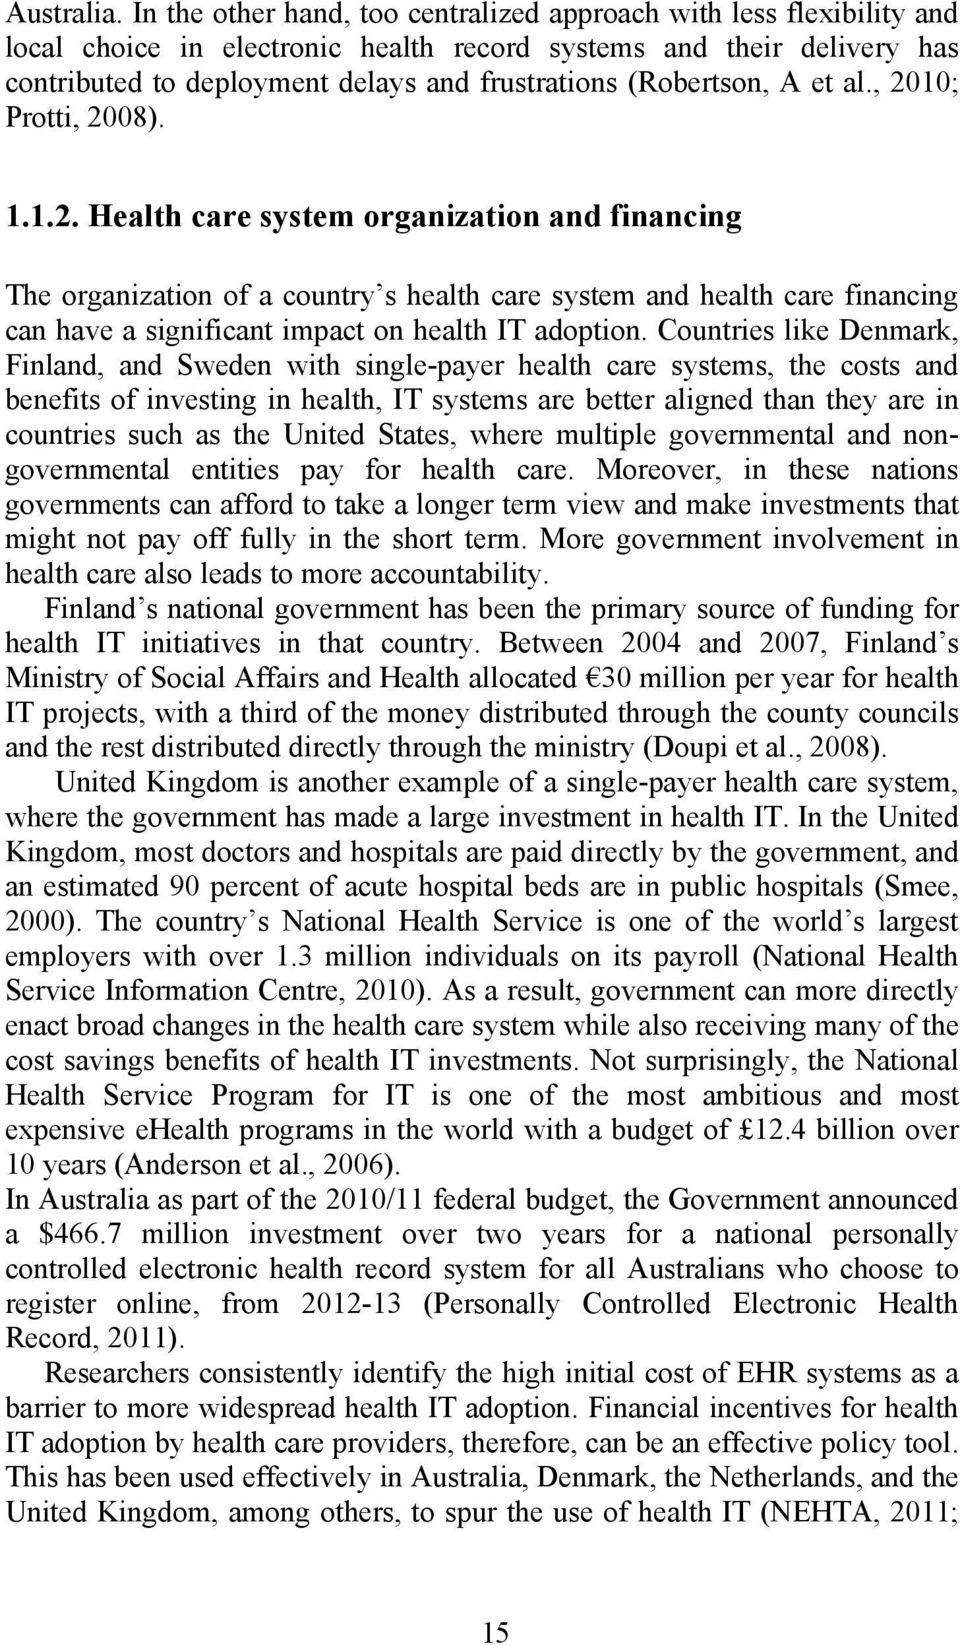 (Robertson, A et al., 2010; Protti, 2008). 1.1.2. Health care system organization and financing The organization of a country s health care system and health care financing can have a significant impact on health IT adoption.